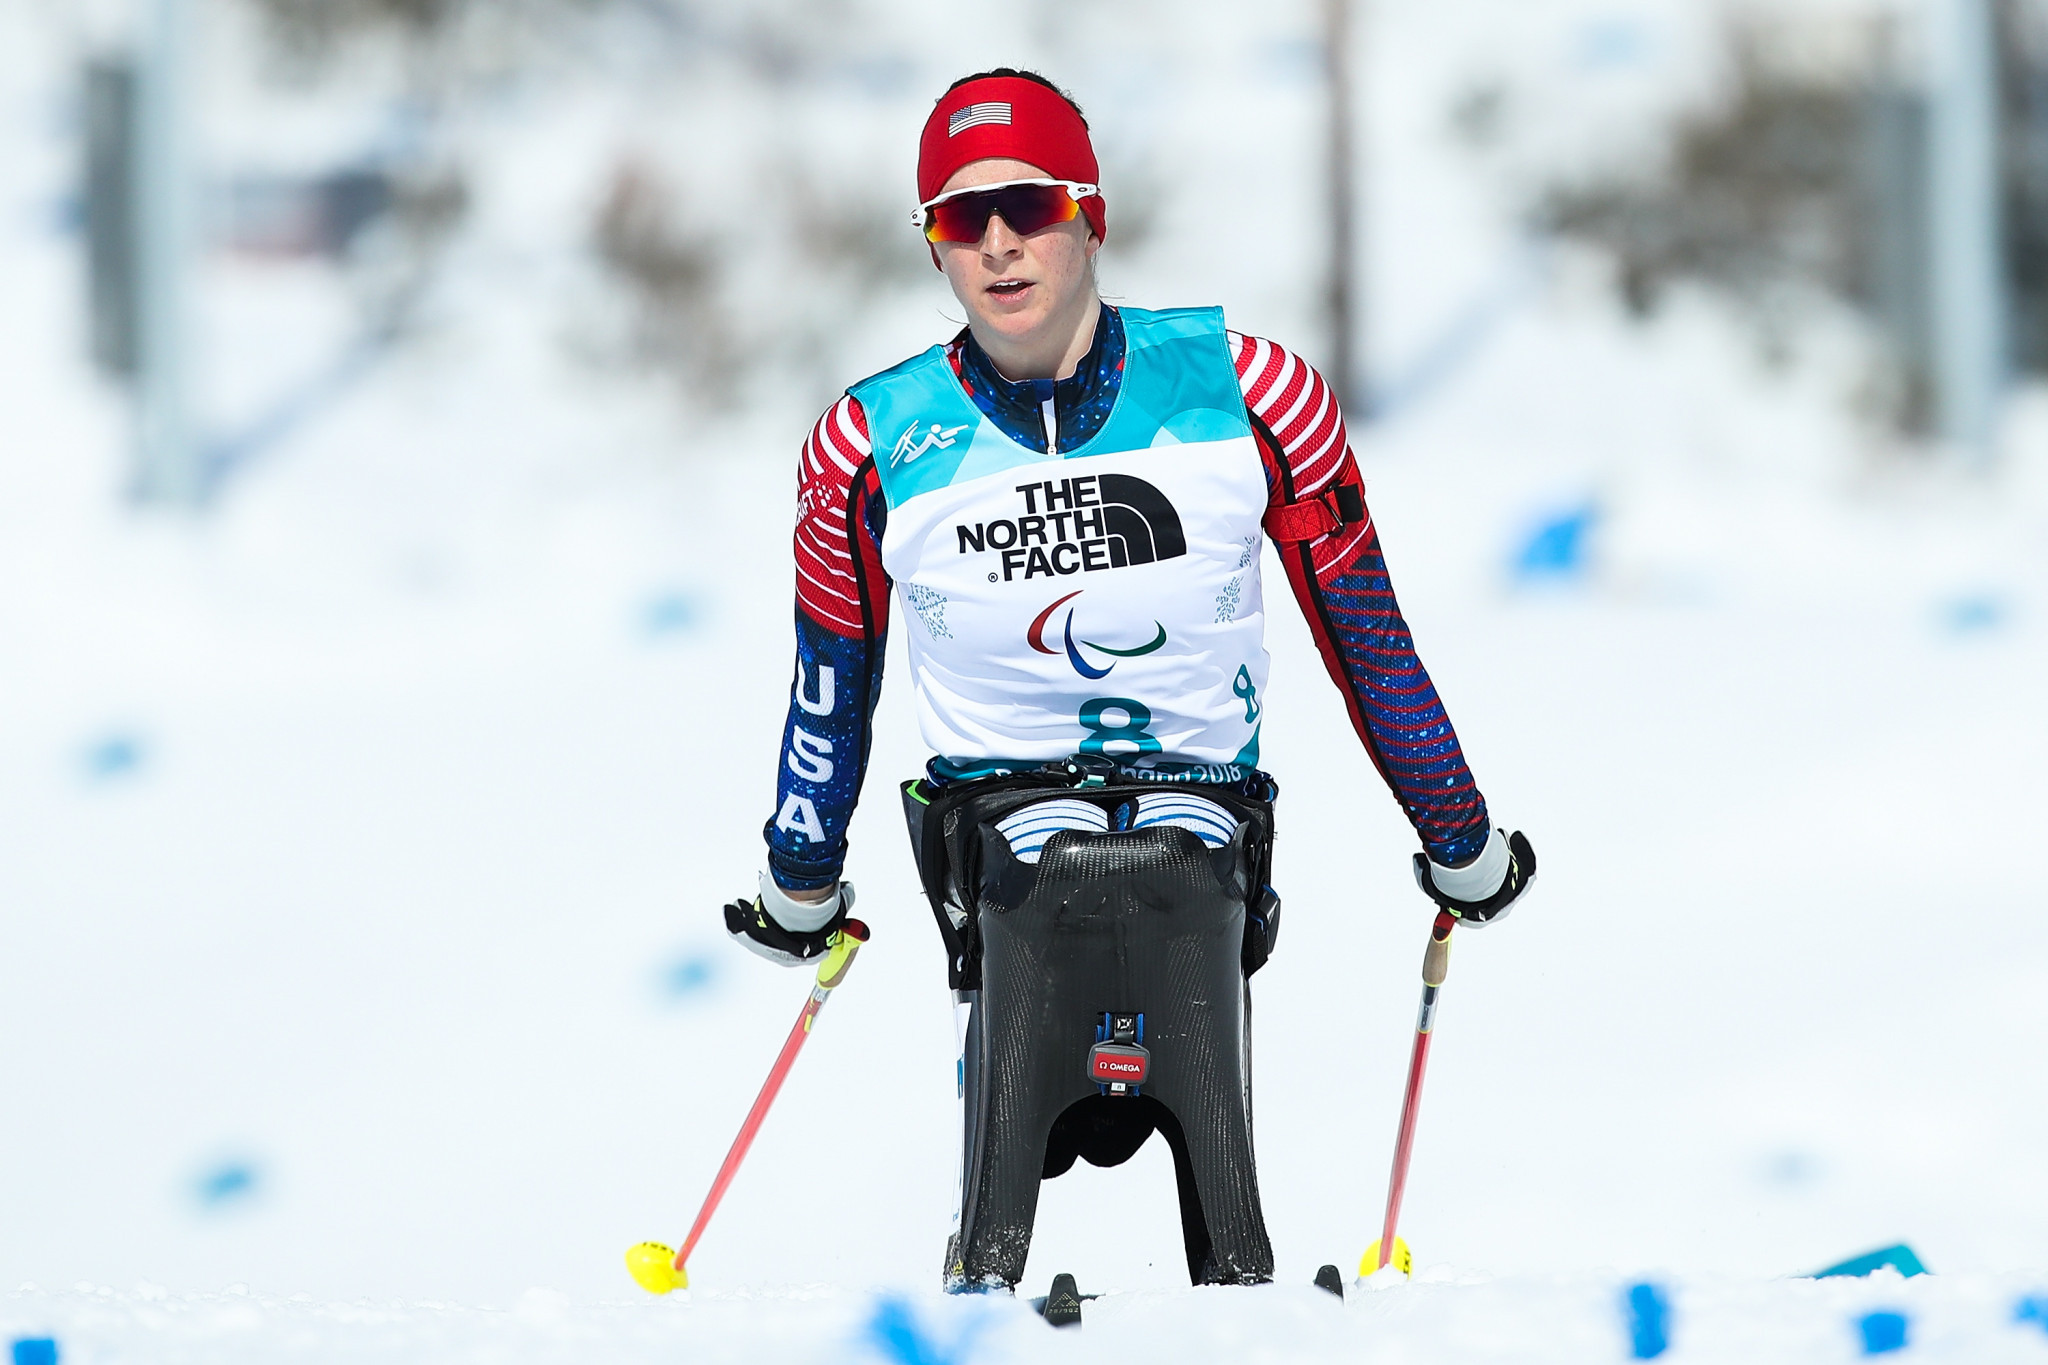 United States and Neutral Paralympic Athletes dominate biathlon on opening day of Pyeongchang 2018